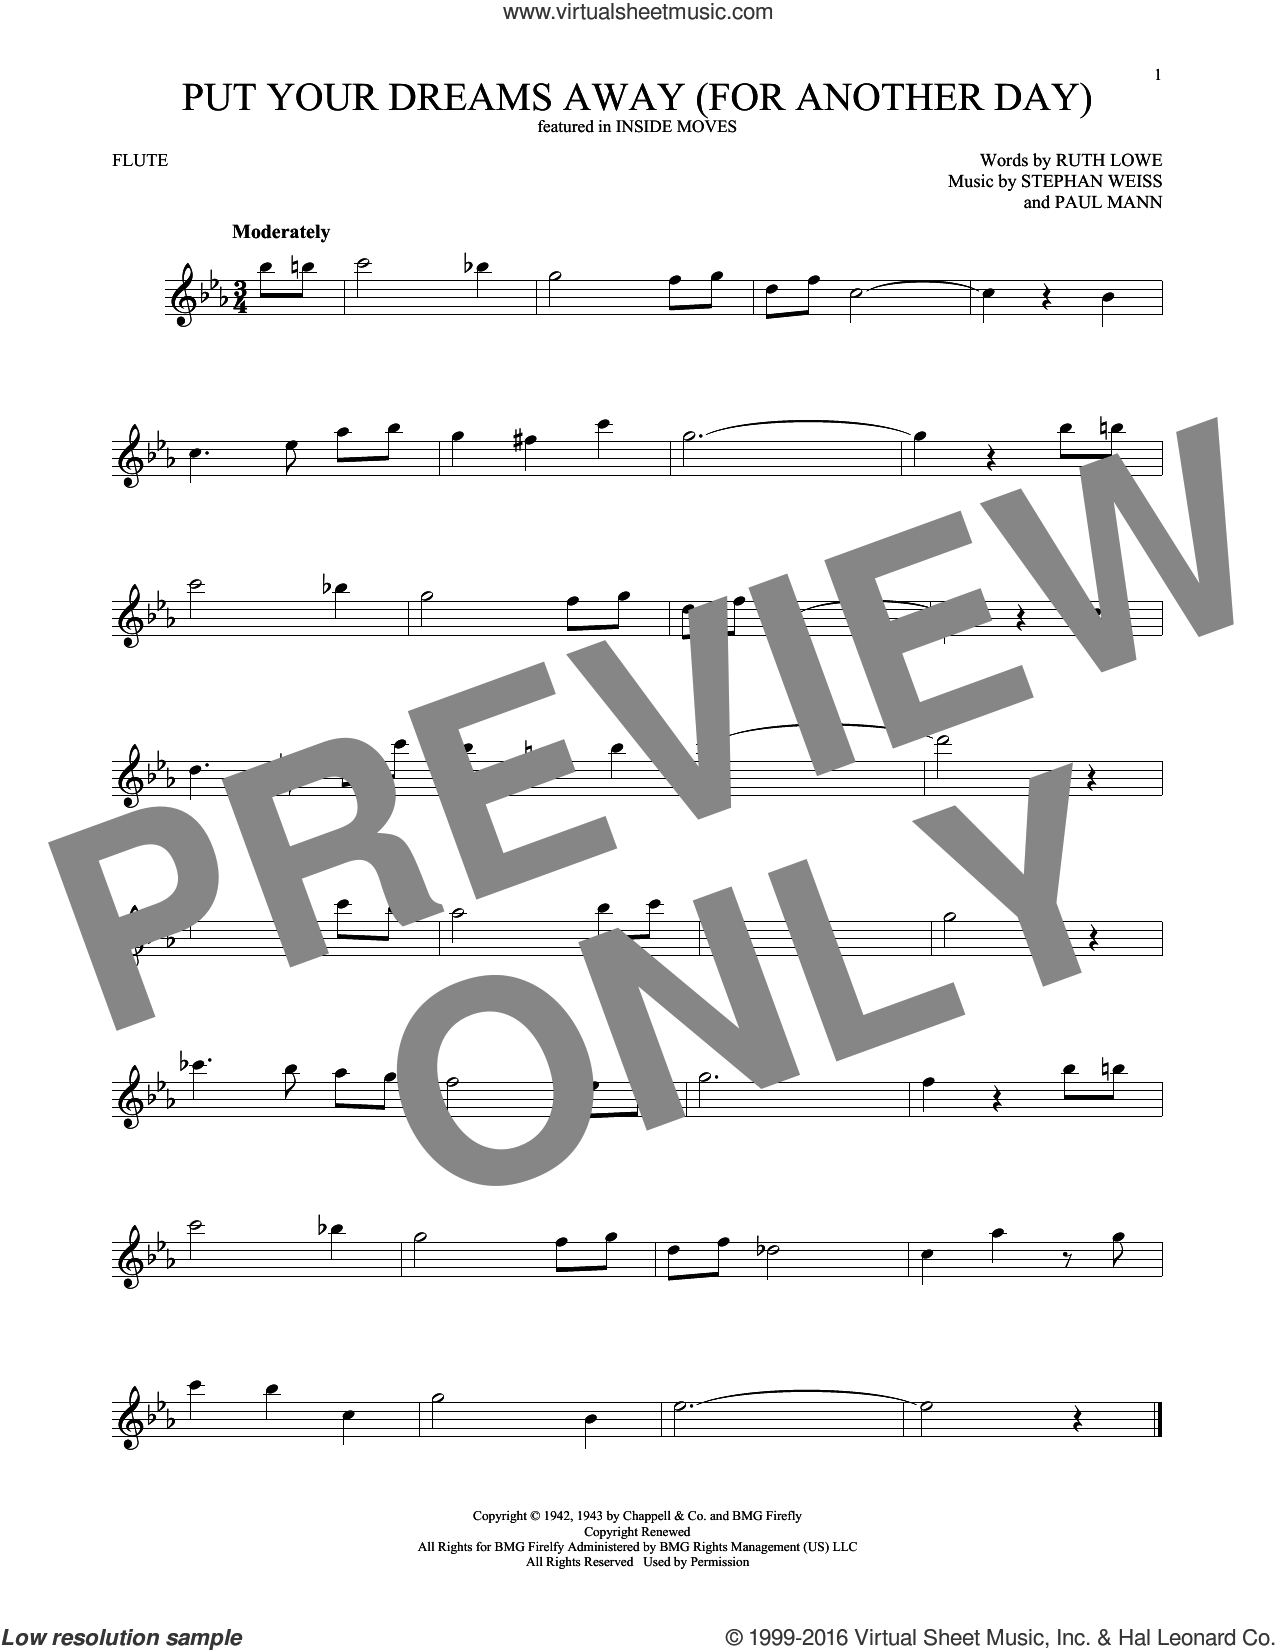 Put Your Dreams Away (For Another Day) sheet music for flute solo by Stephen Weiss, Frank Sinatra and Ruth Lowe. Score Image Preview.